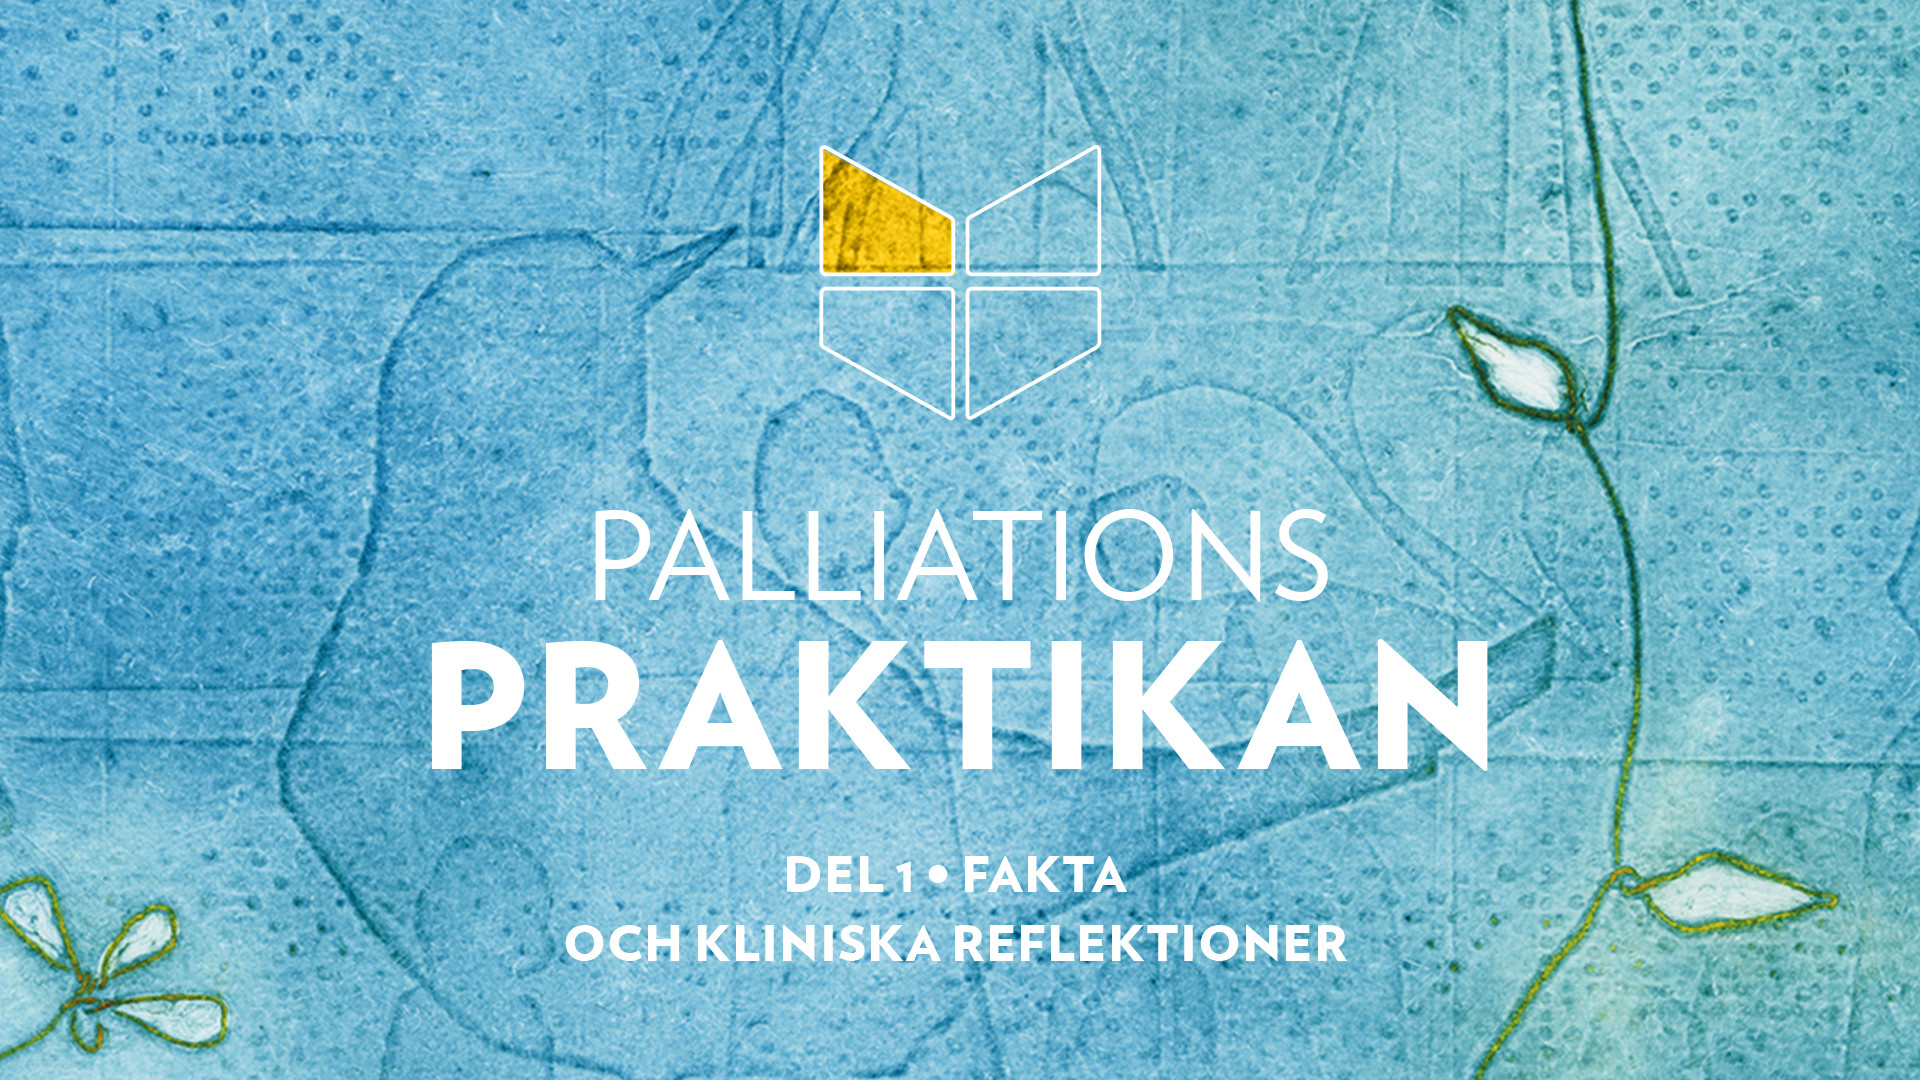 Palliationspraktikan del 1 - Kapitel 3: Kommunikation